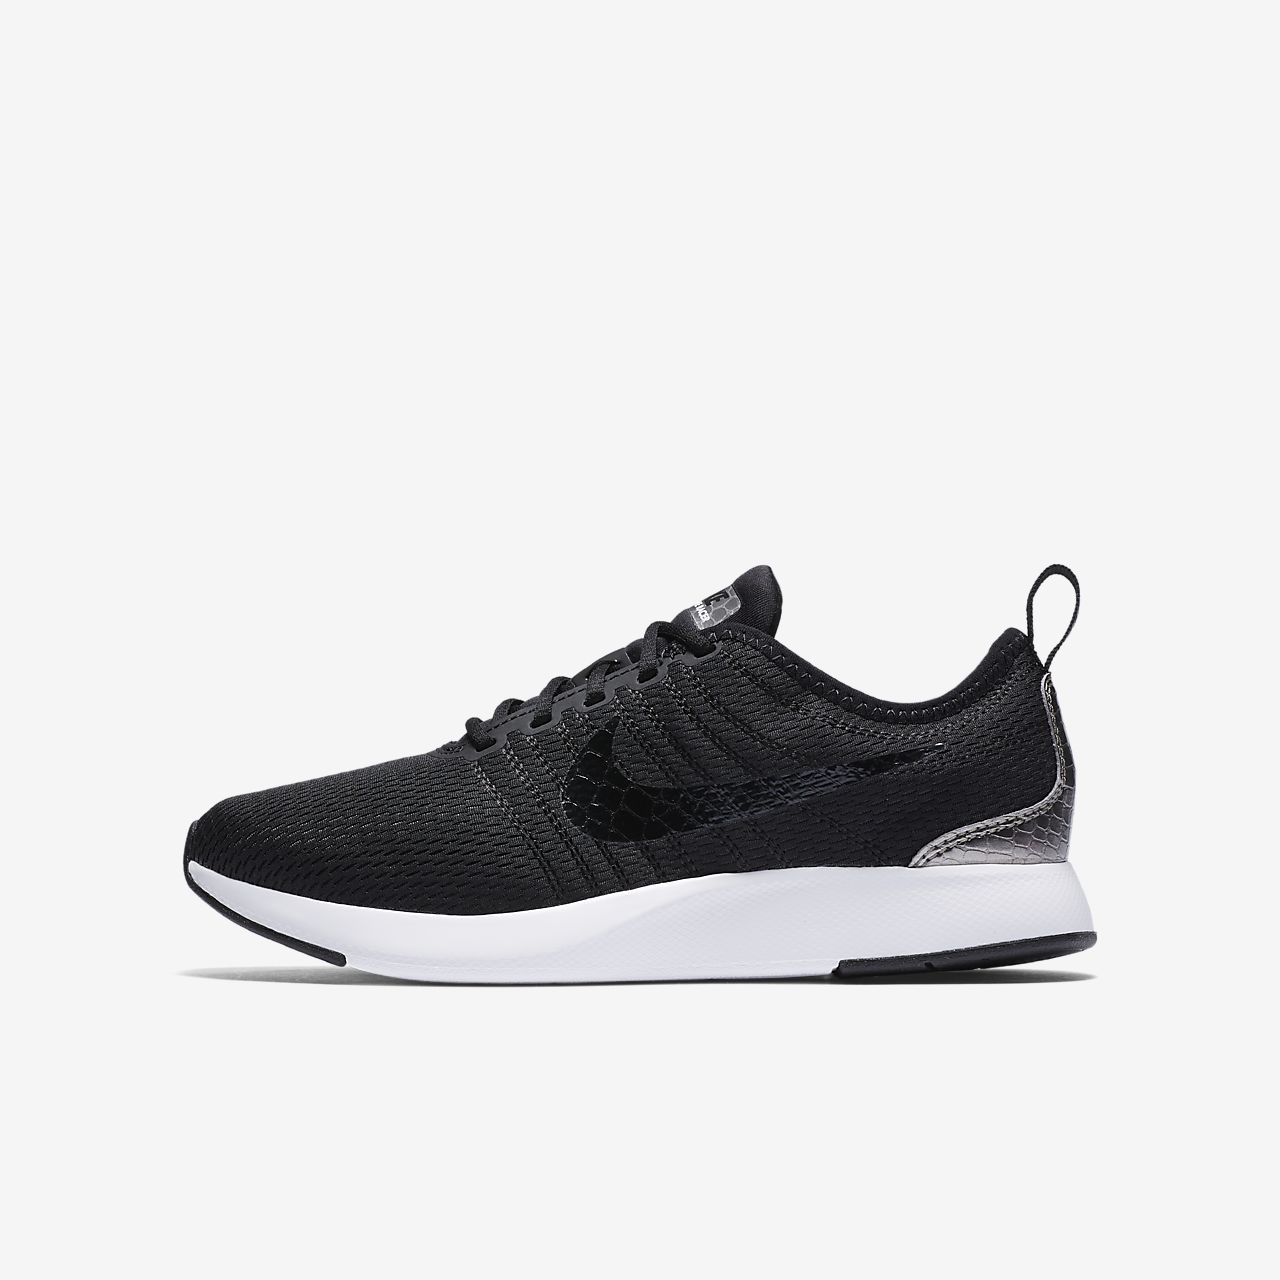 ... Nike Dualtone Racer Big Kids' Shoe